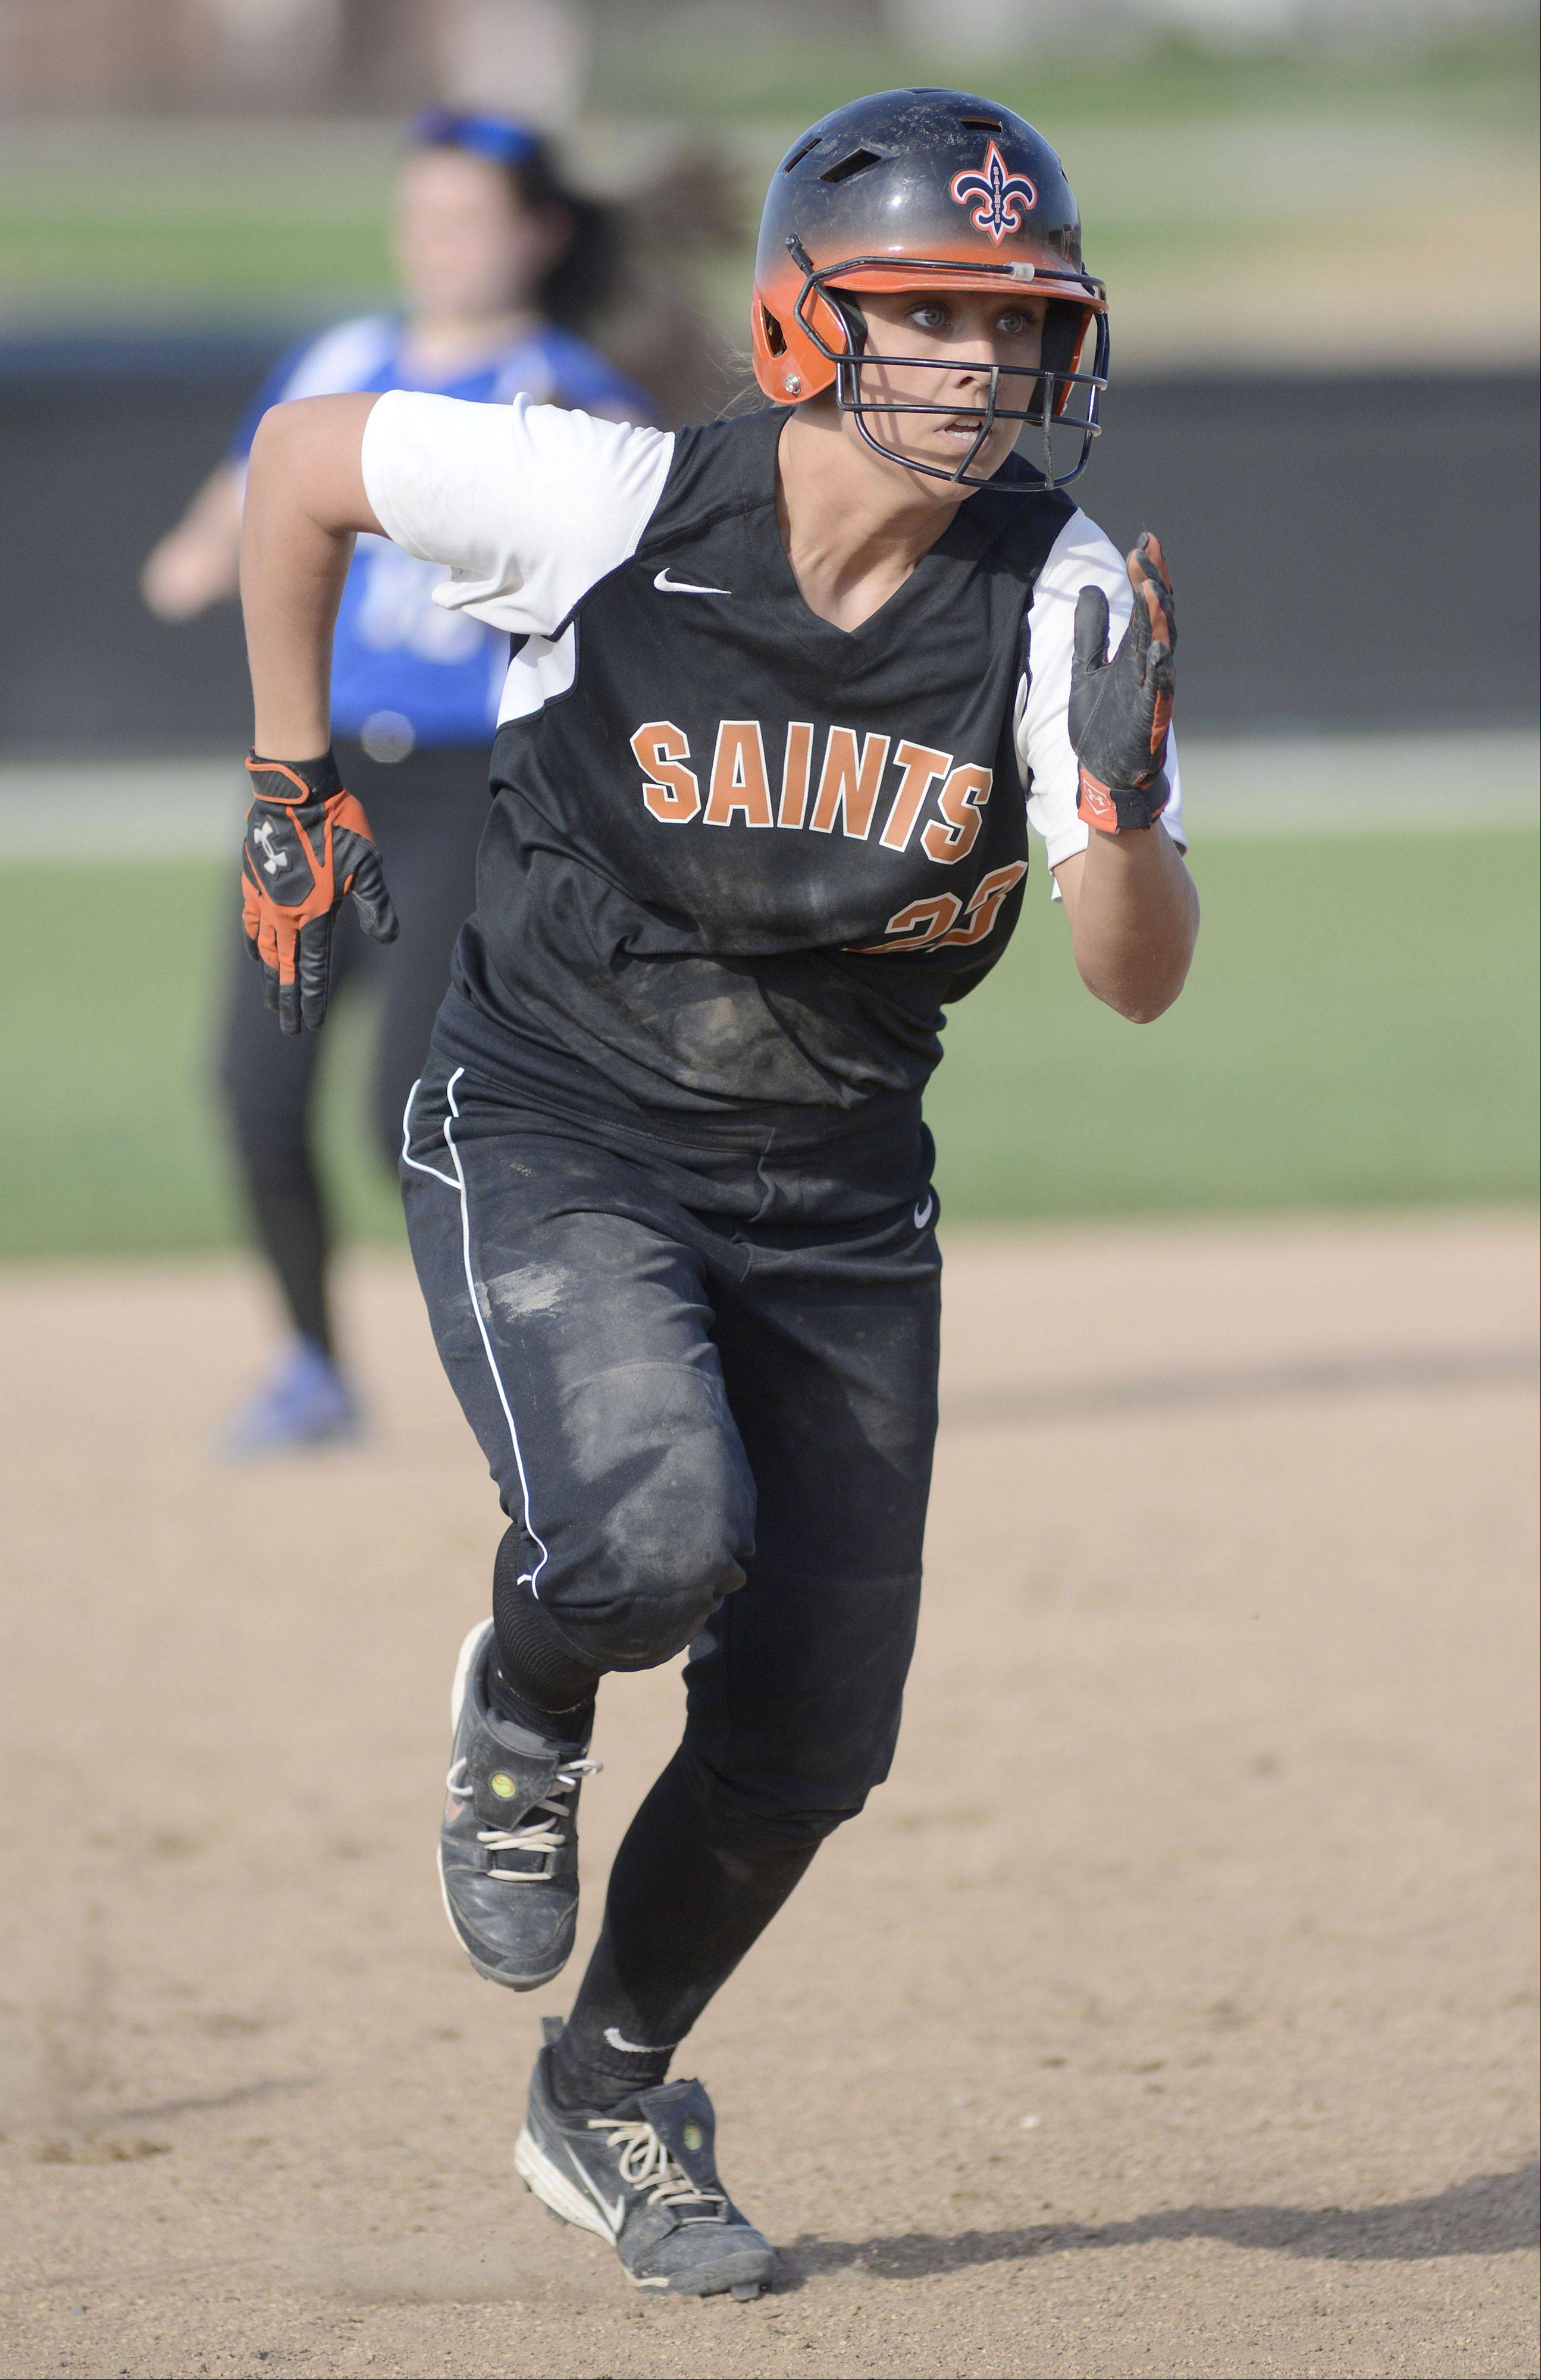 St. Charles East Mackenzie Meadows sprints for third base in the fourth inning on Tuesday, April 30.